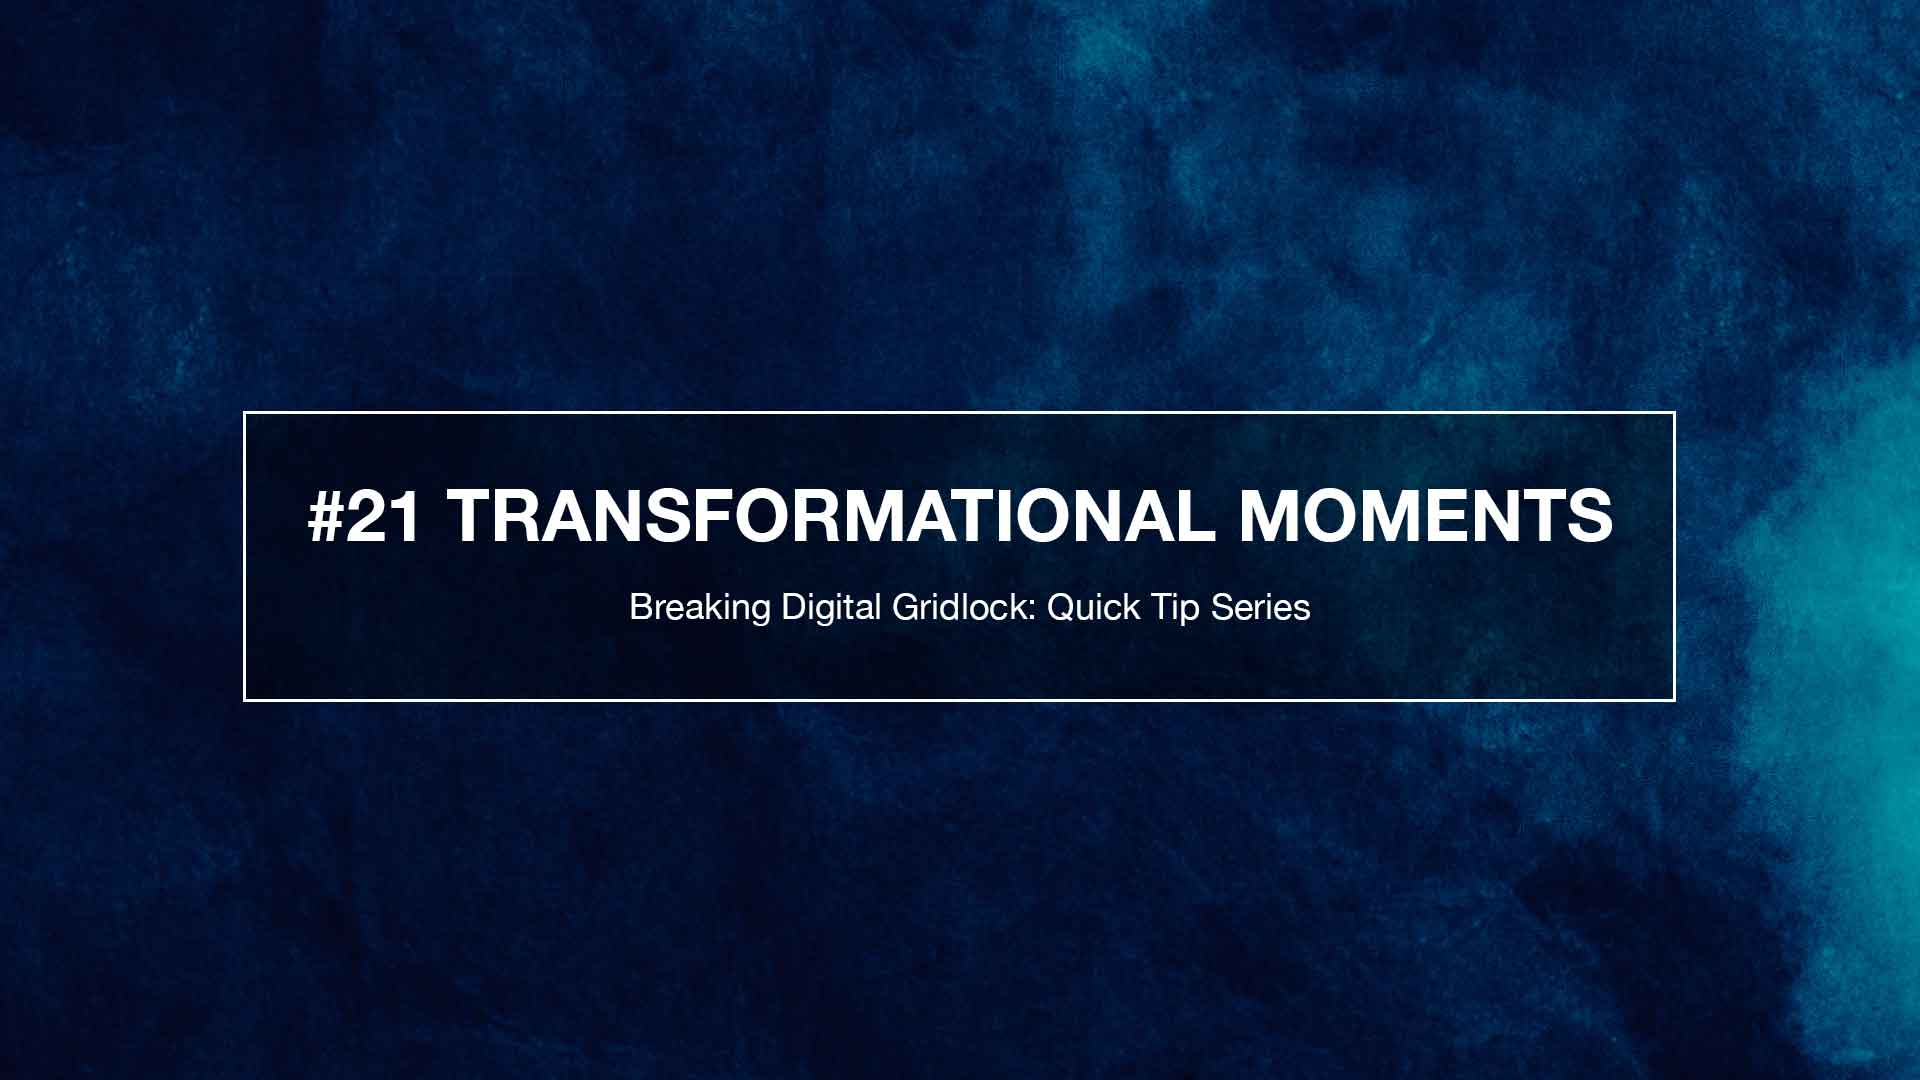 Breaking Weekly Digital Gridlock #22: Transformational Moments